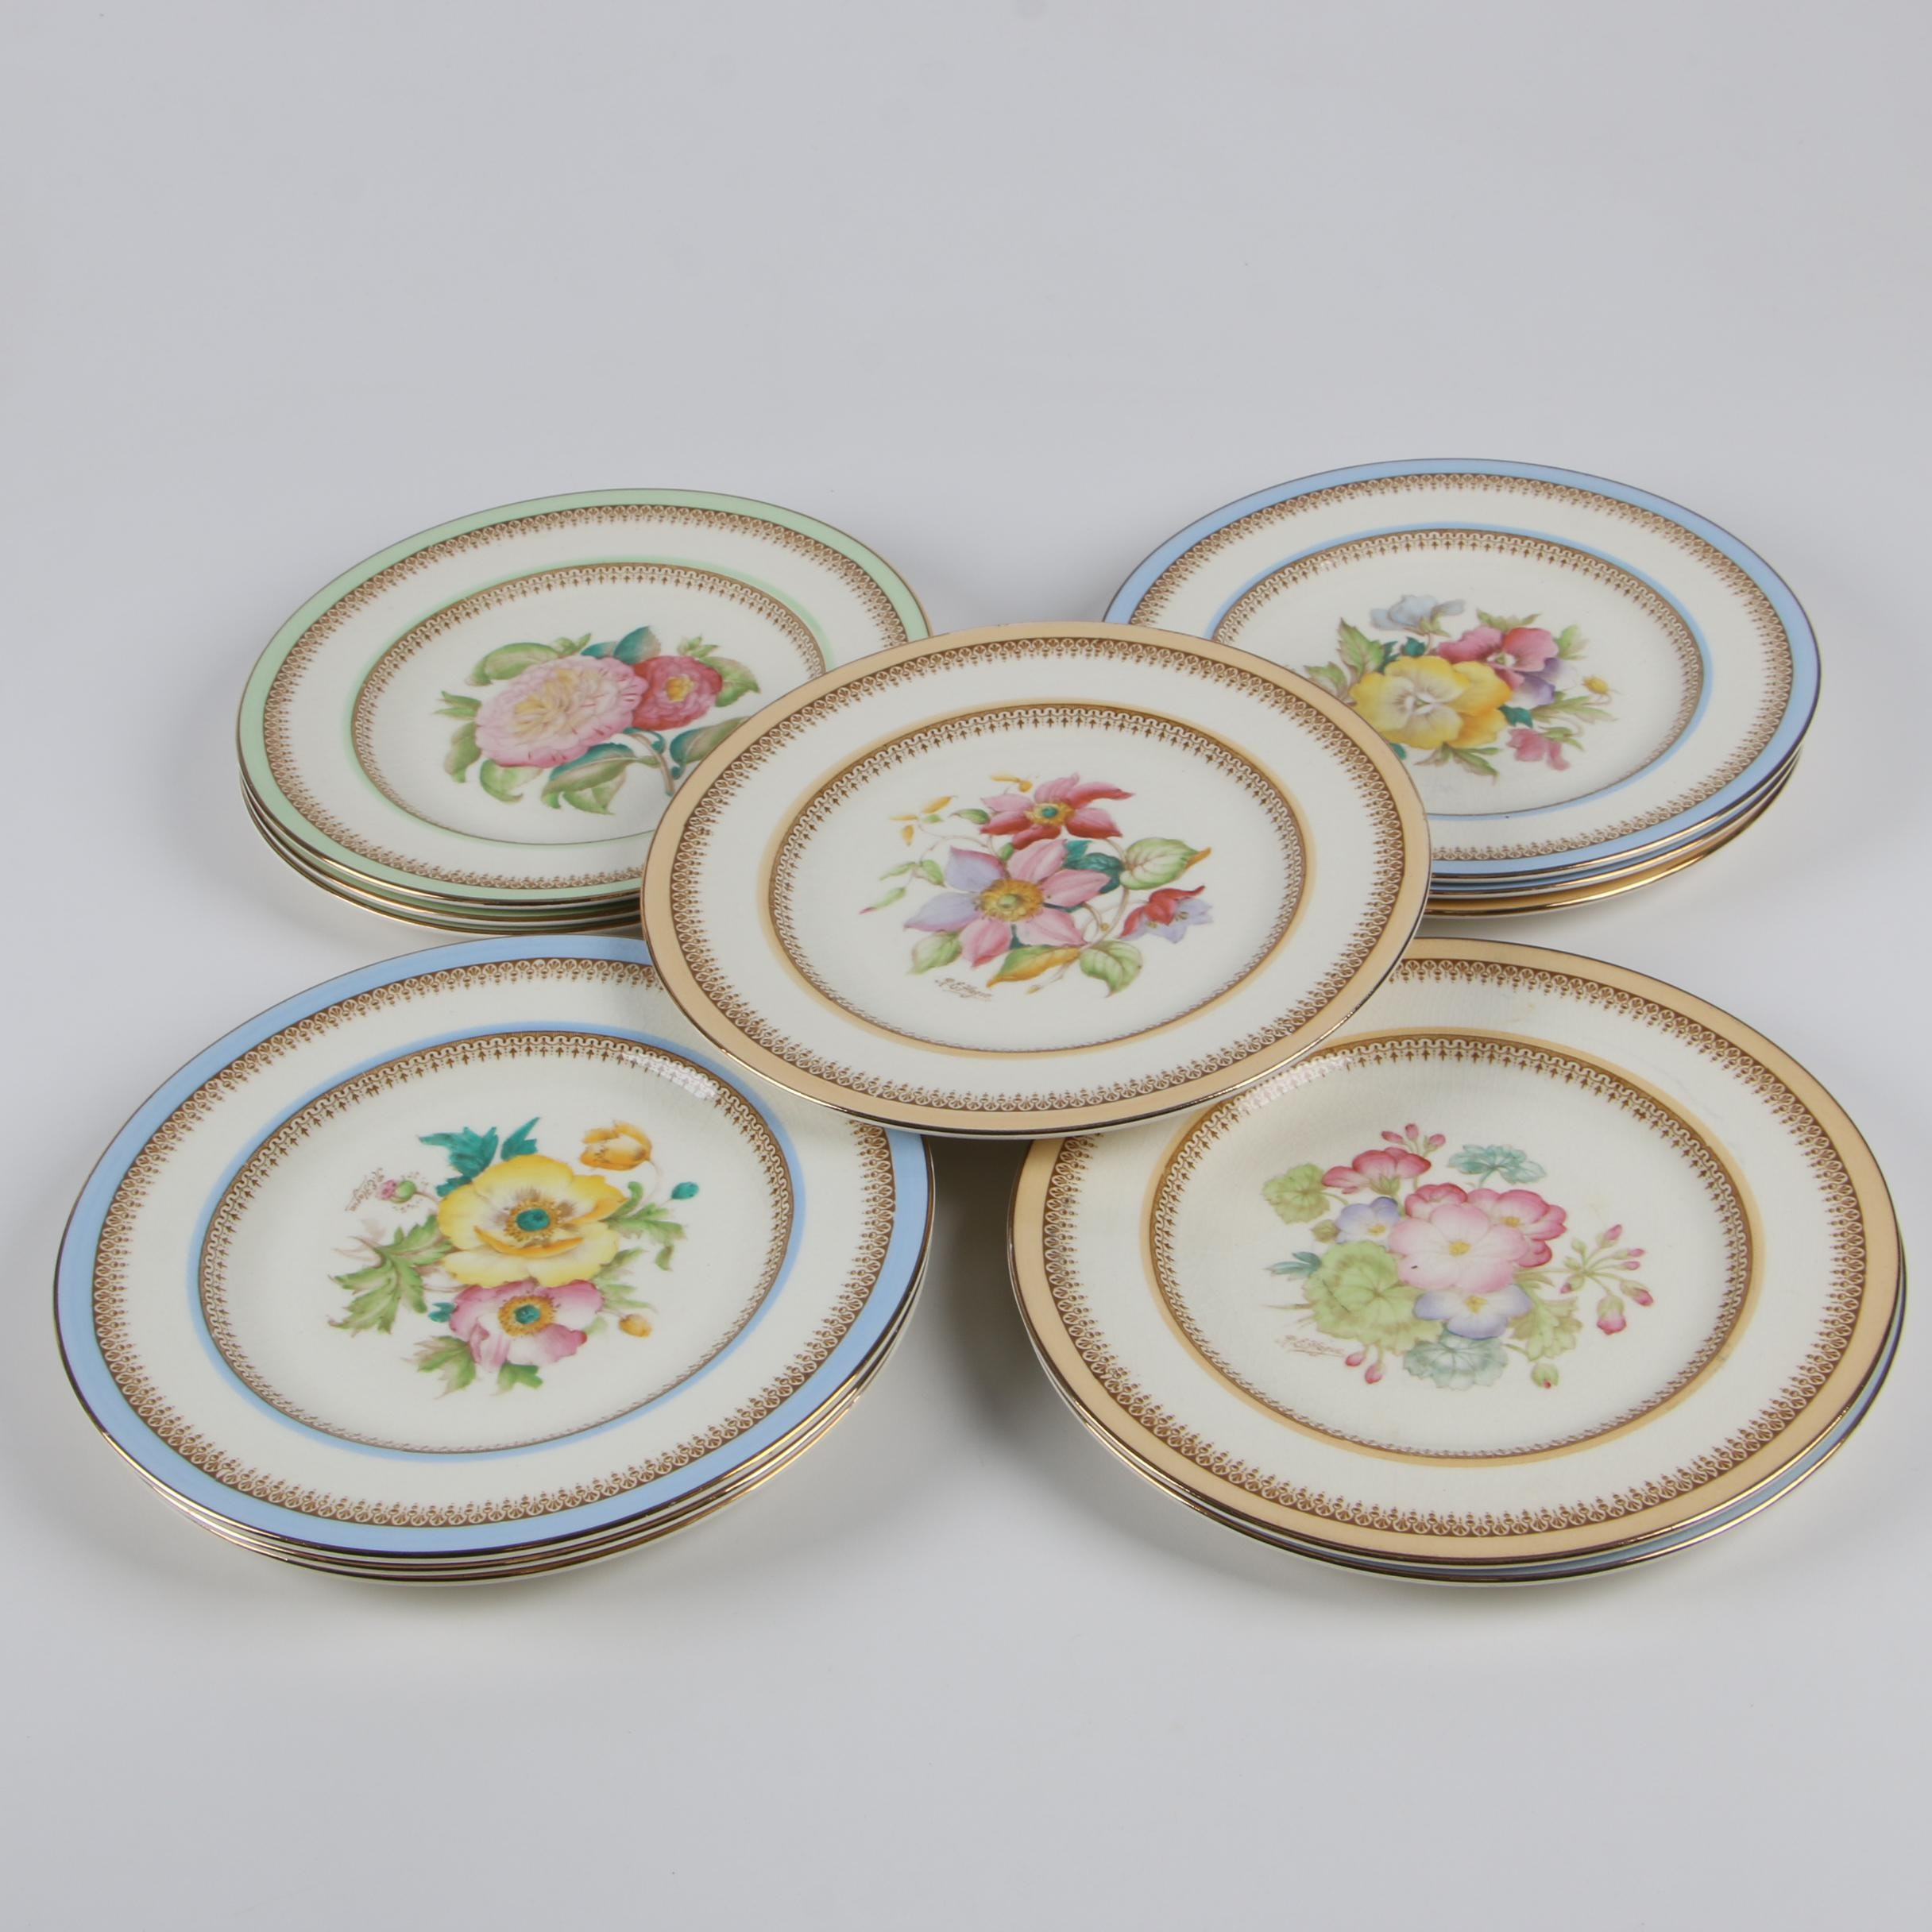 Crown Ducal Floral Earthenware Luncheon Plates, Early 20th Century